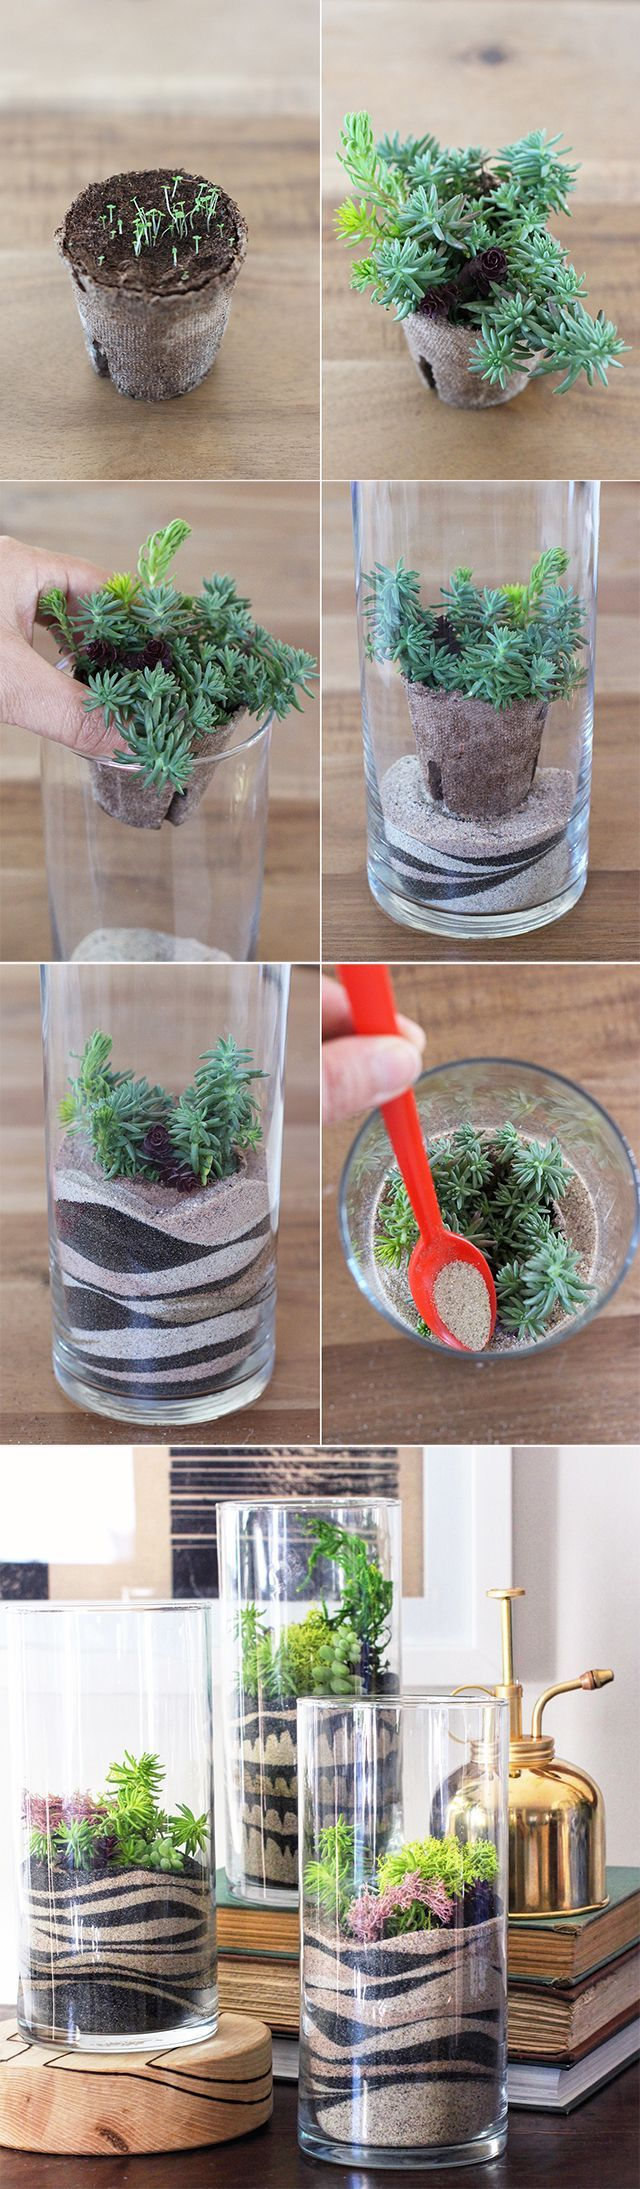 Best ideas about terrarium centerpiece on pinterest